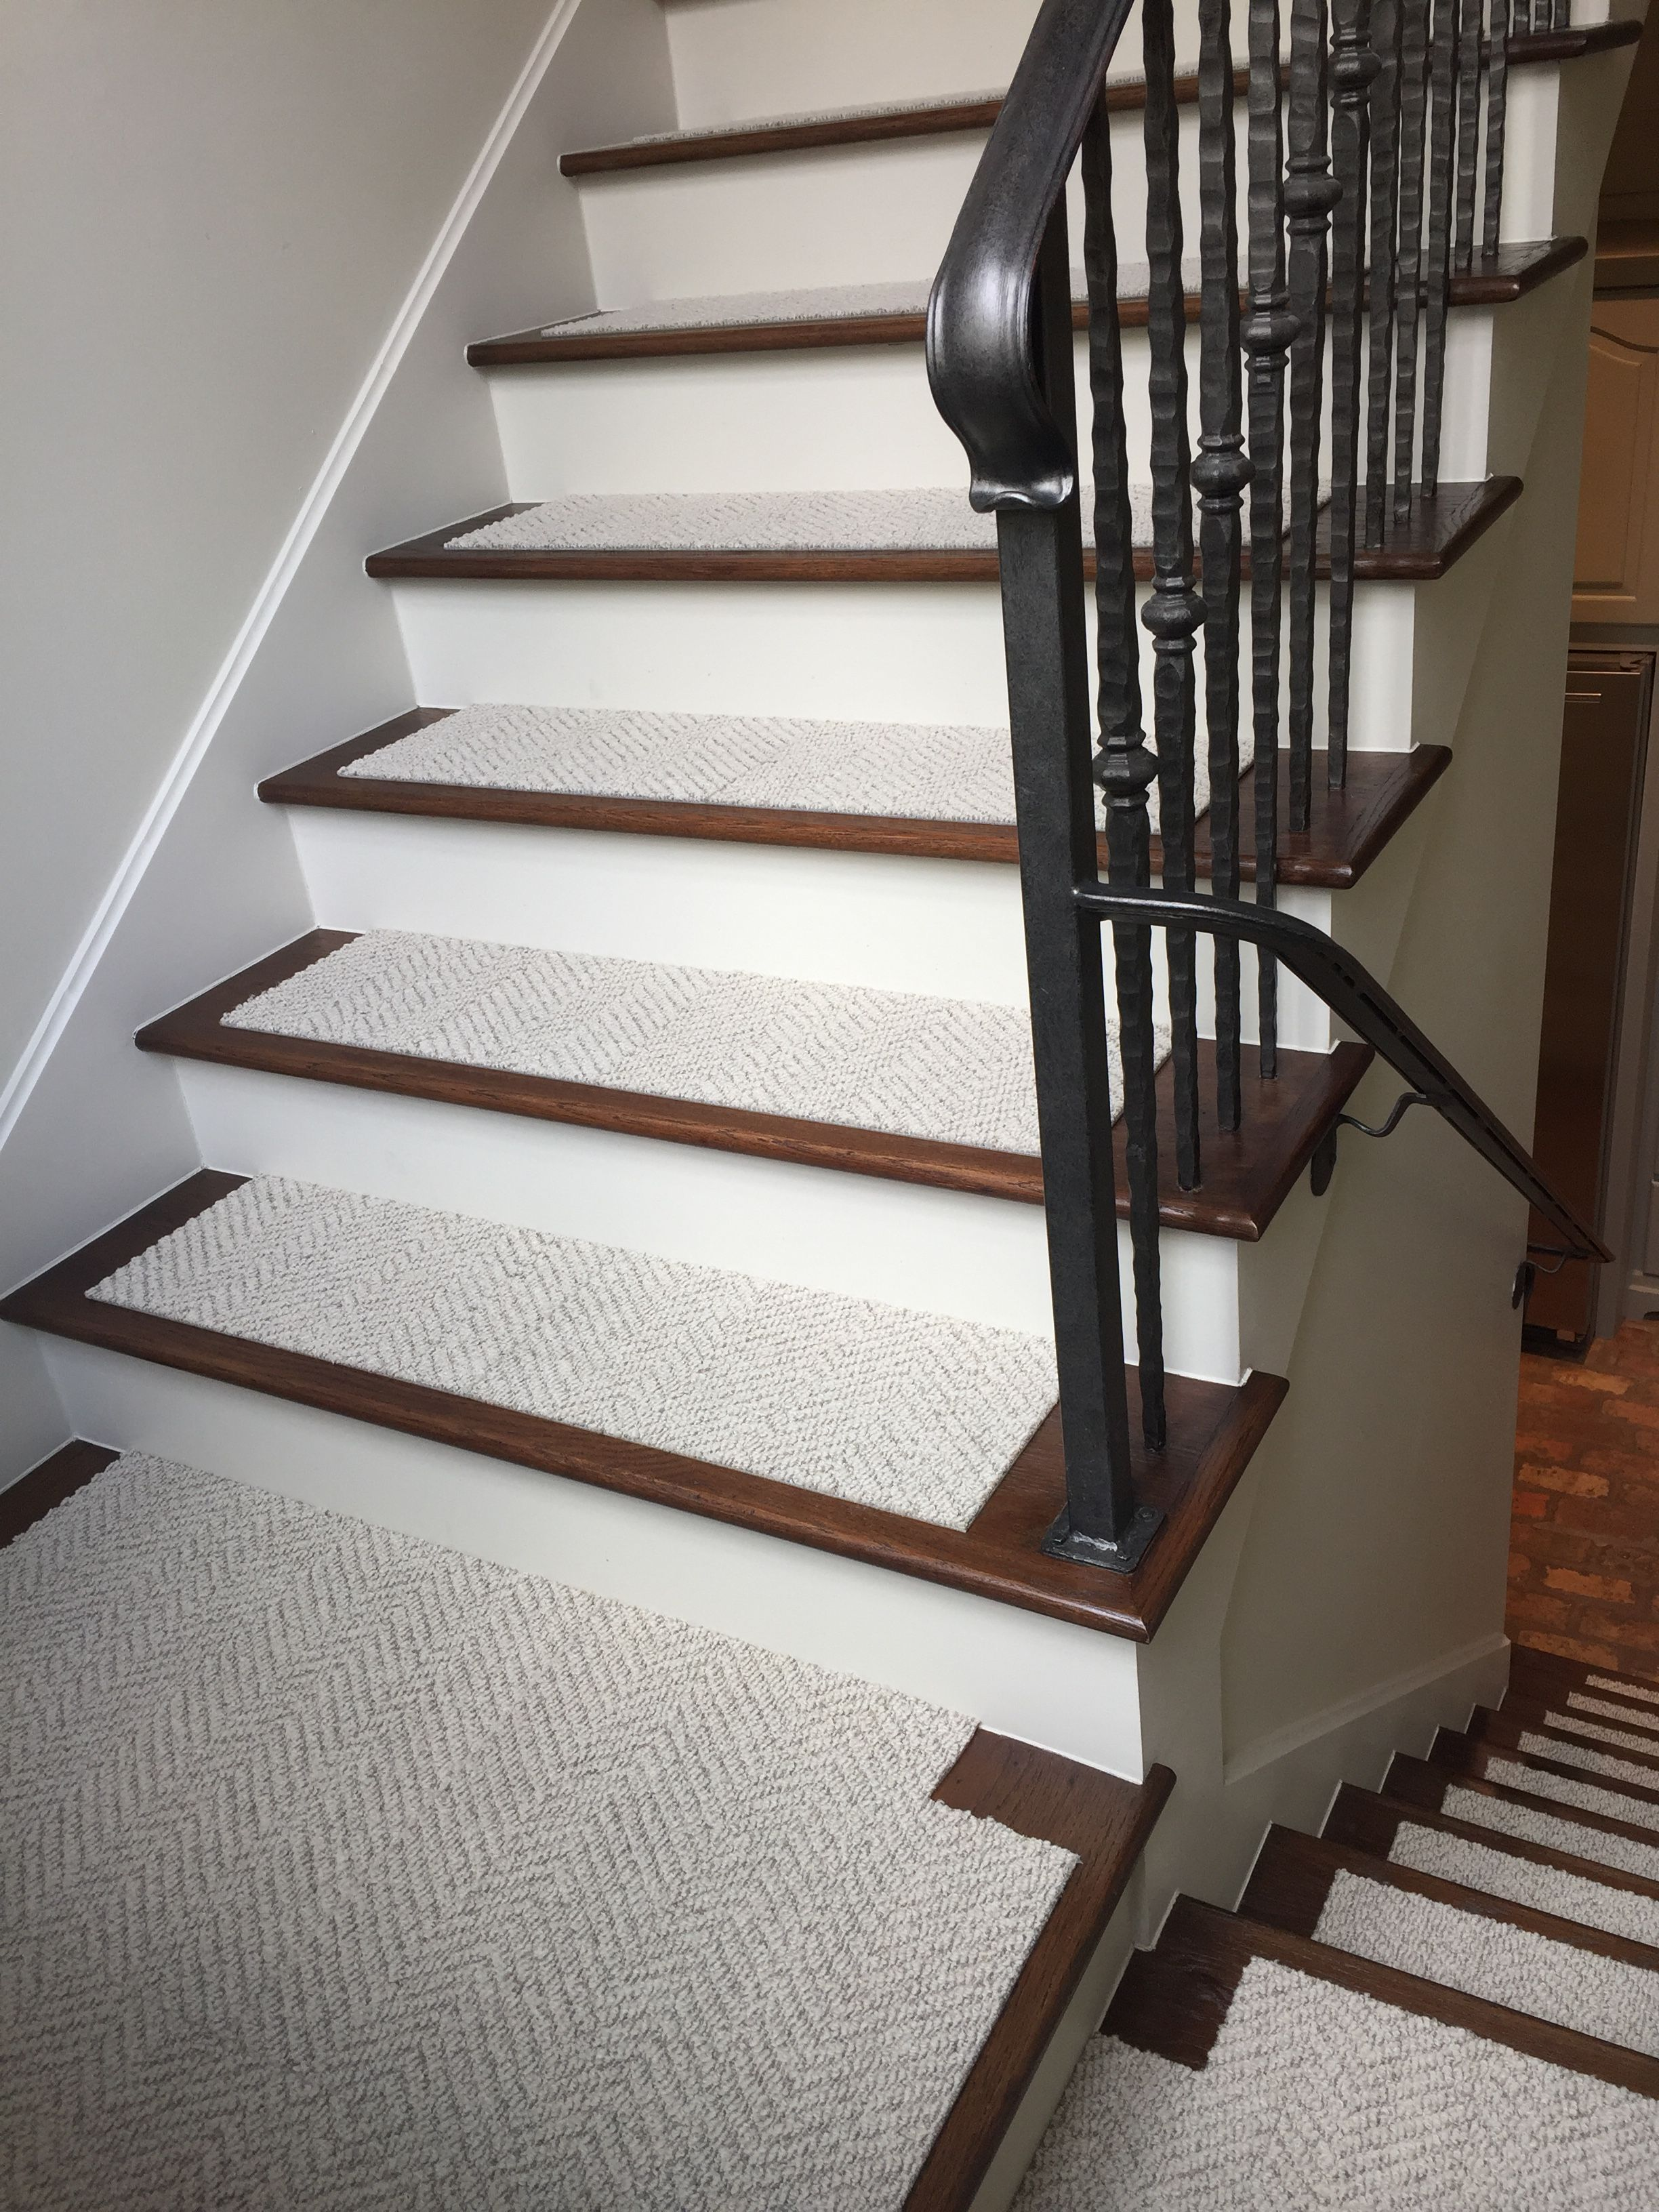 Use Flor Carpet Tiles On Your Stairs Make Them Simply | Carpet Tiles For Steps